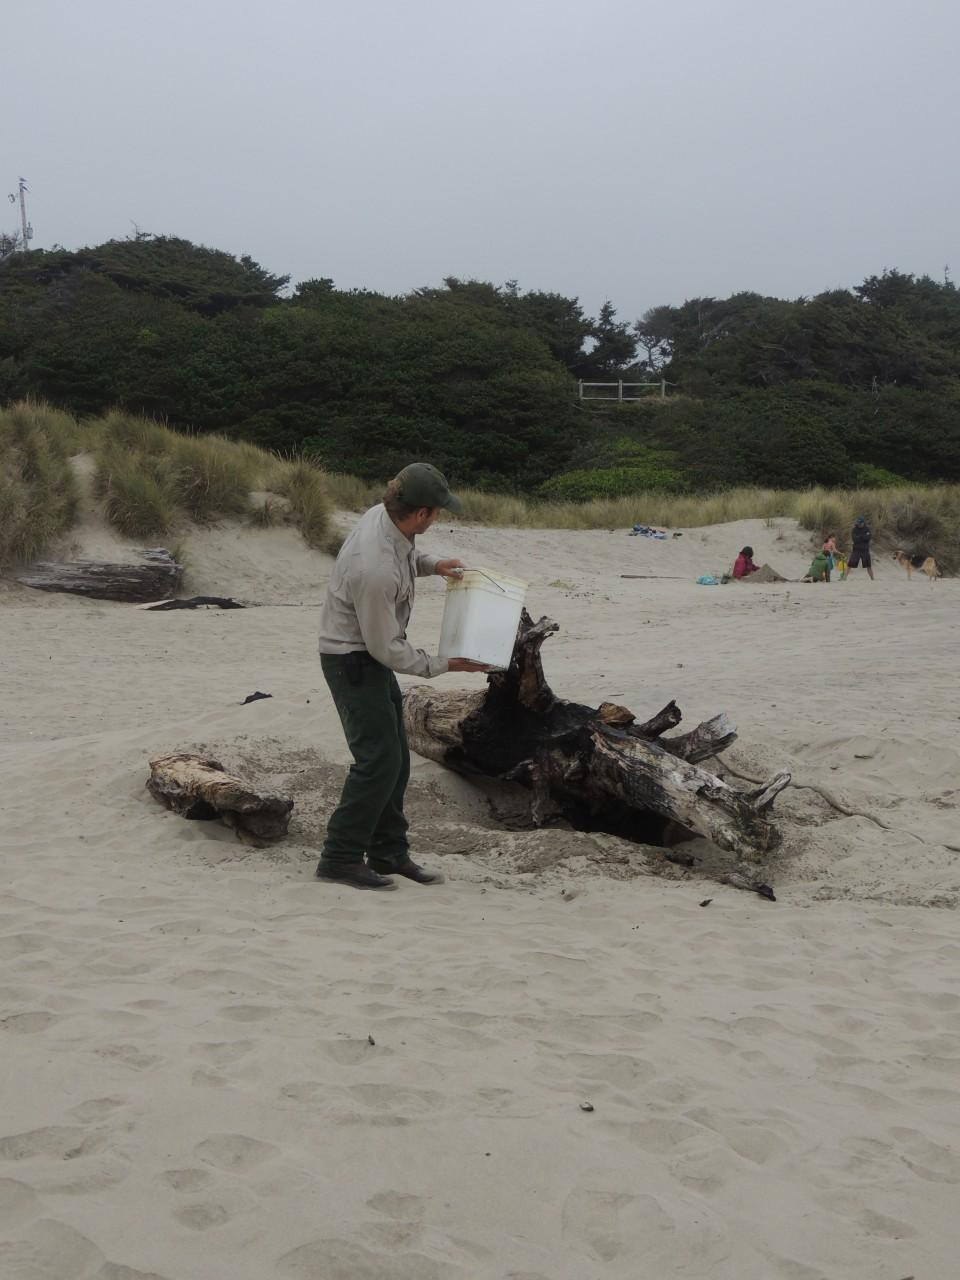 When arriving at Governor Patterson state Park.I walked down to the beach and to the left there was a piece of Drift wood on fire. A park ranger was called to come put it out!